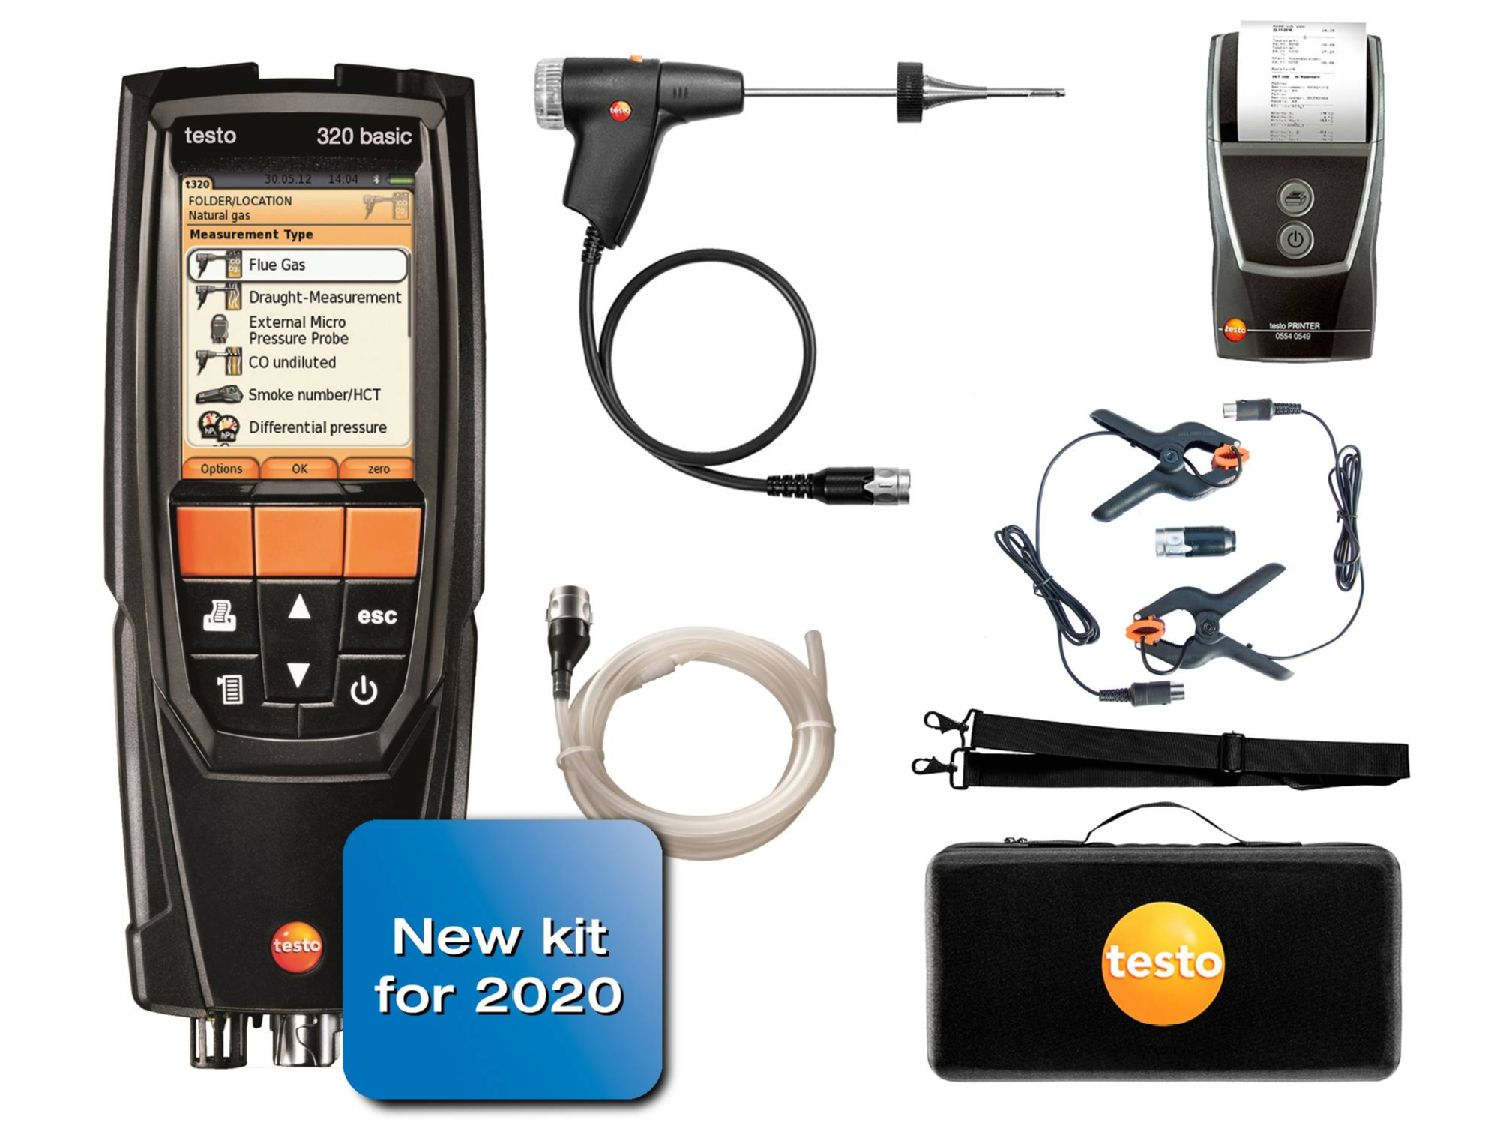 testo 320B Advanced Kit 0563 3223 81 (new for 2020).jpg